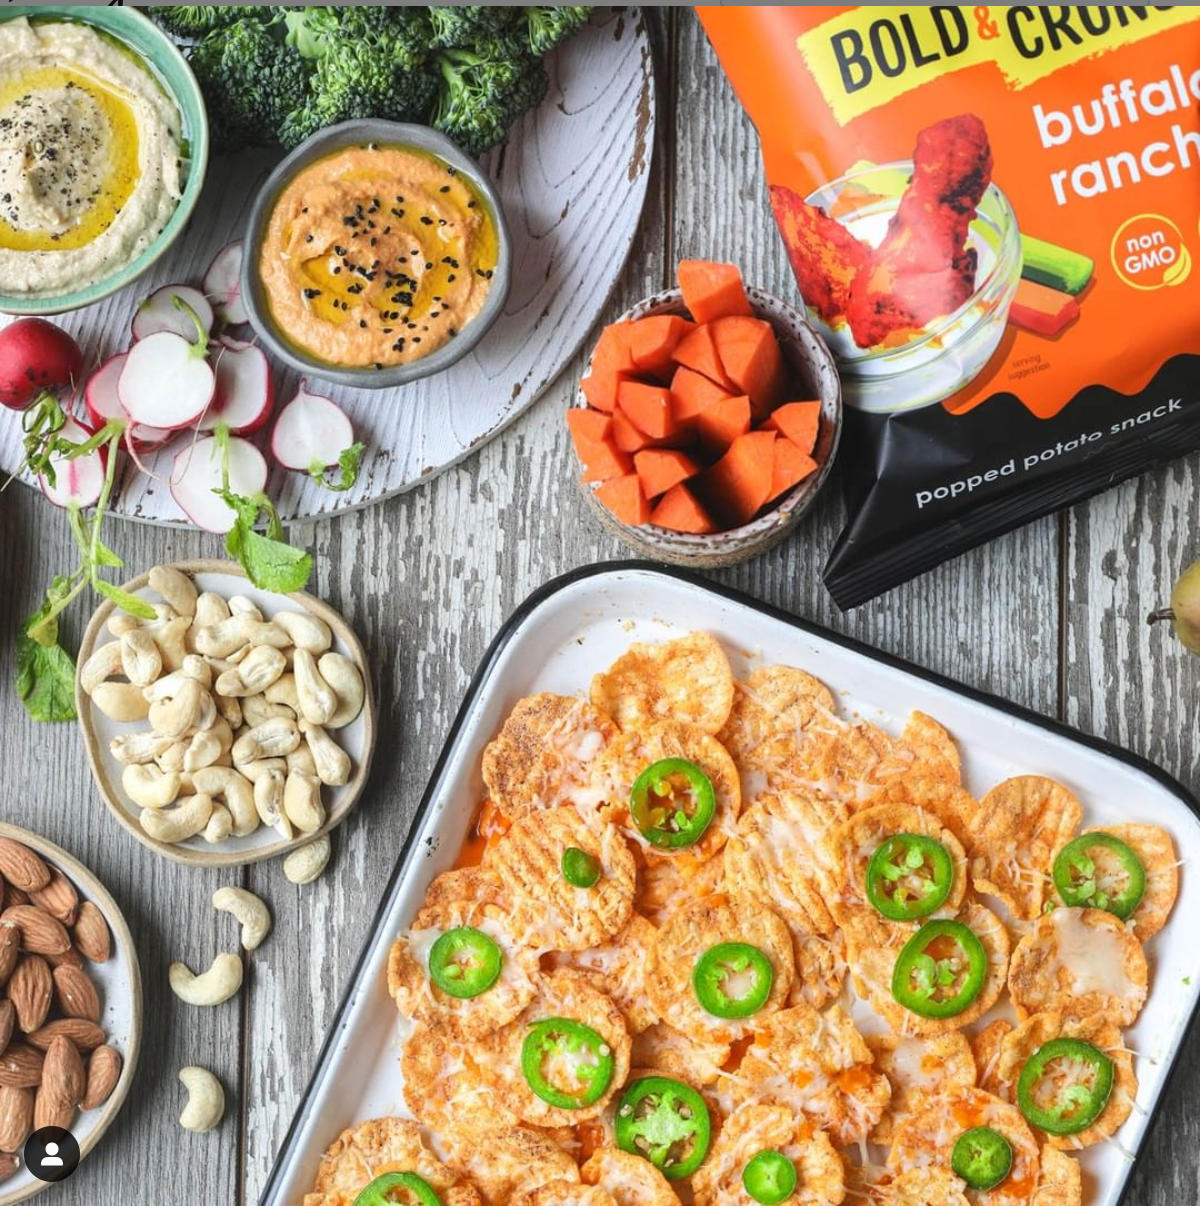 nacho recipe with buffalo ranch popchips, jalapenos and various dips